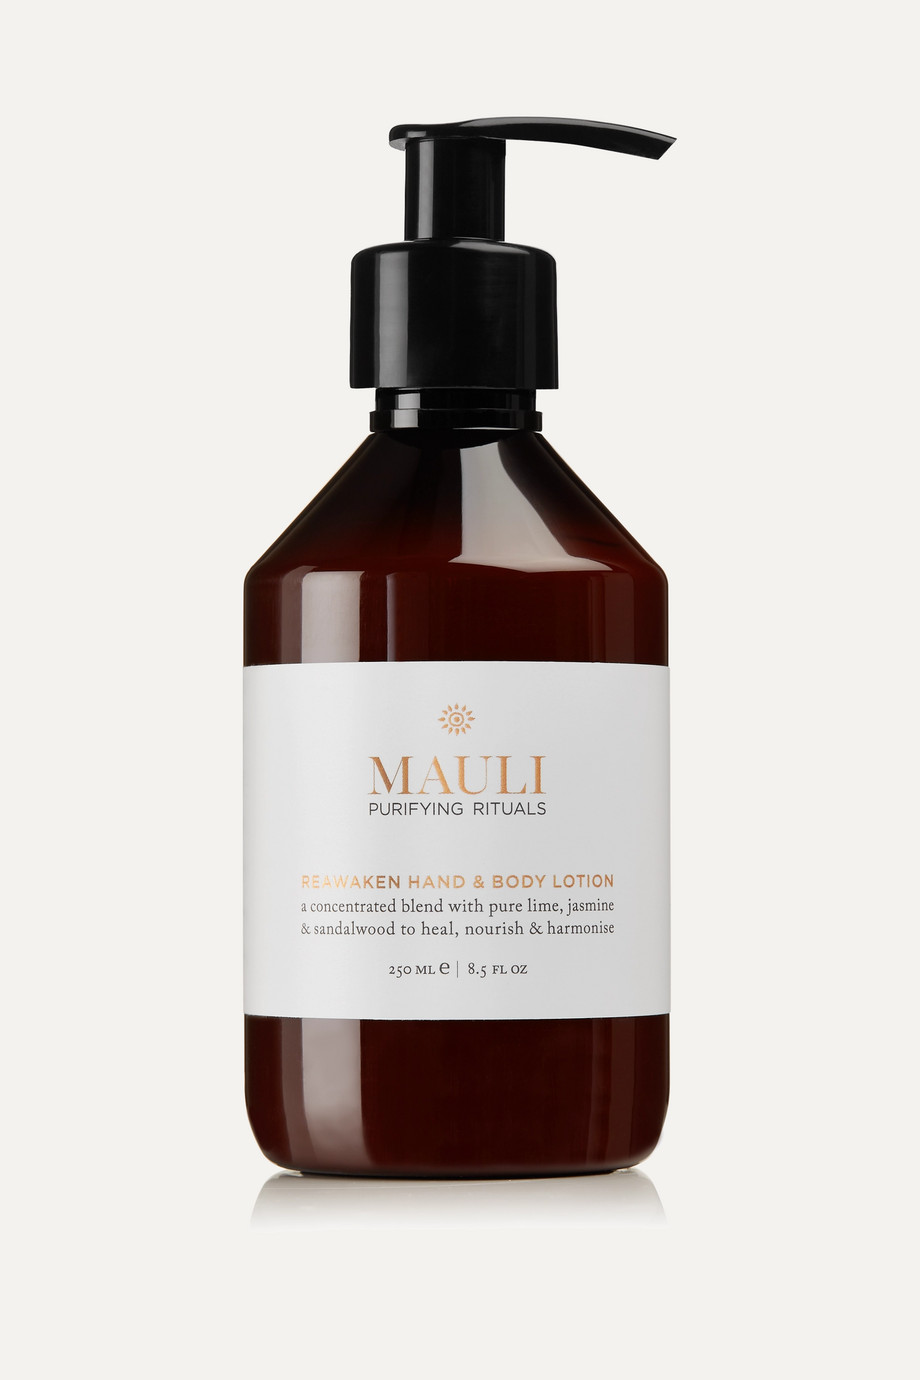 MAULI RITUALS Reawaken Hand and Body Lotion, 250ml